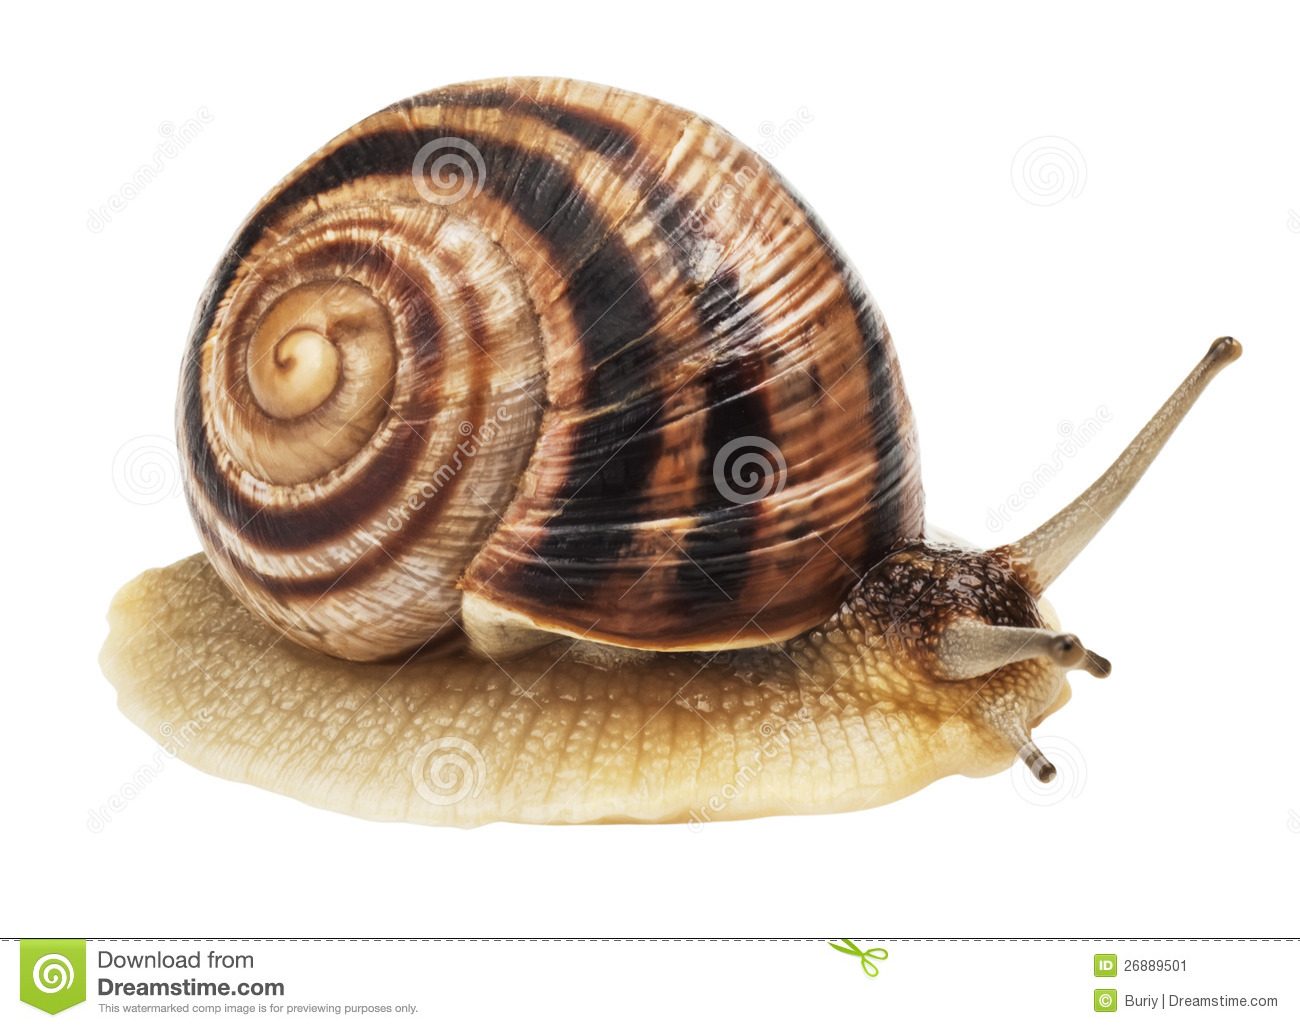 how to stop snails in the garden